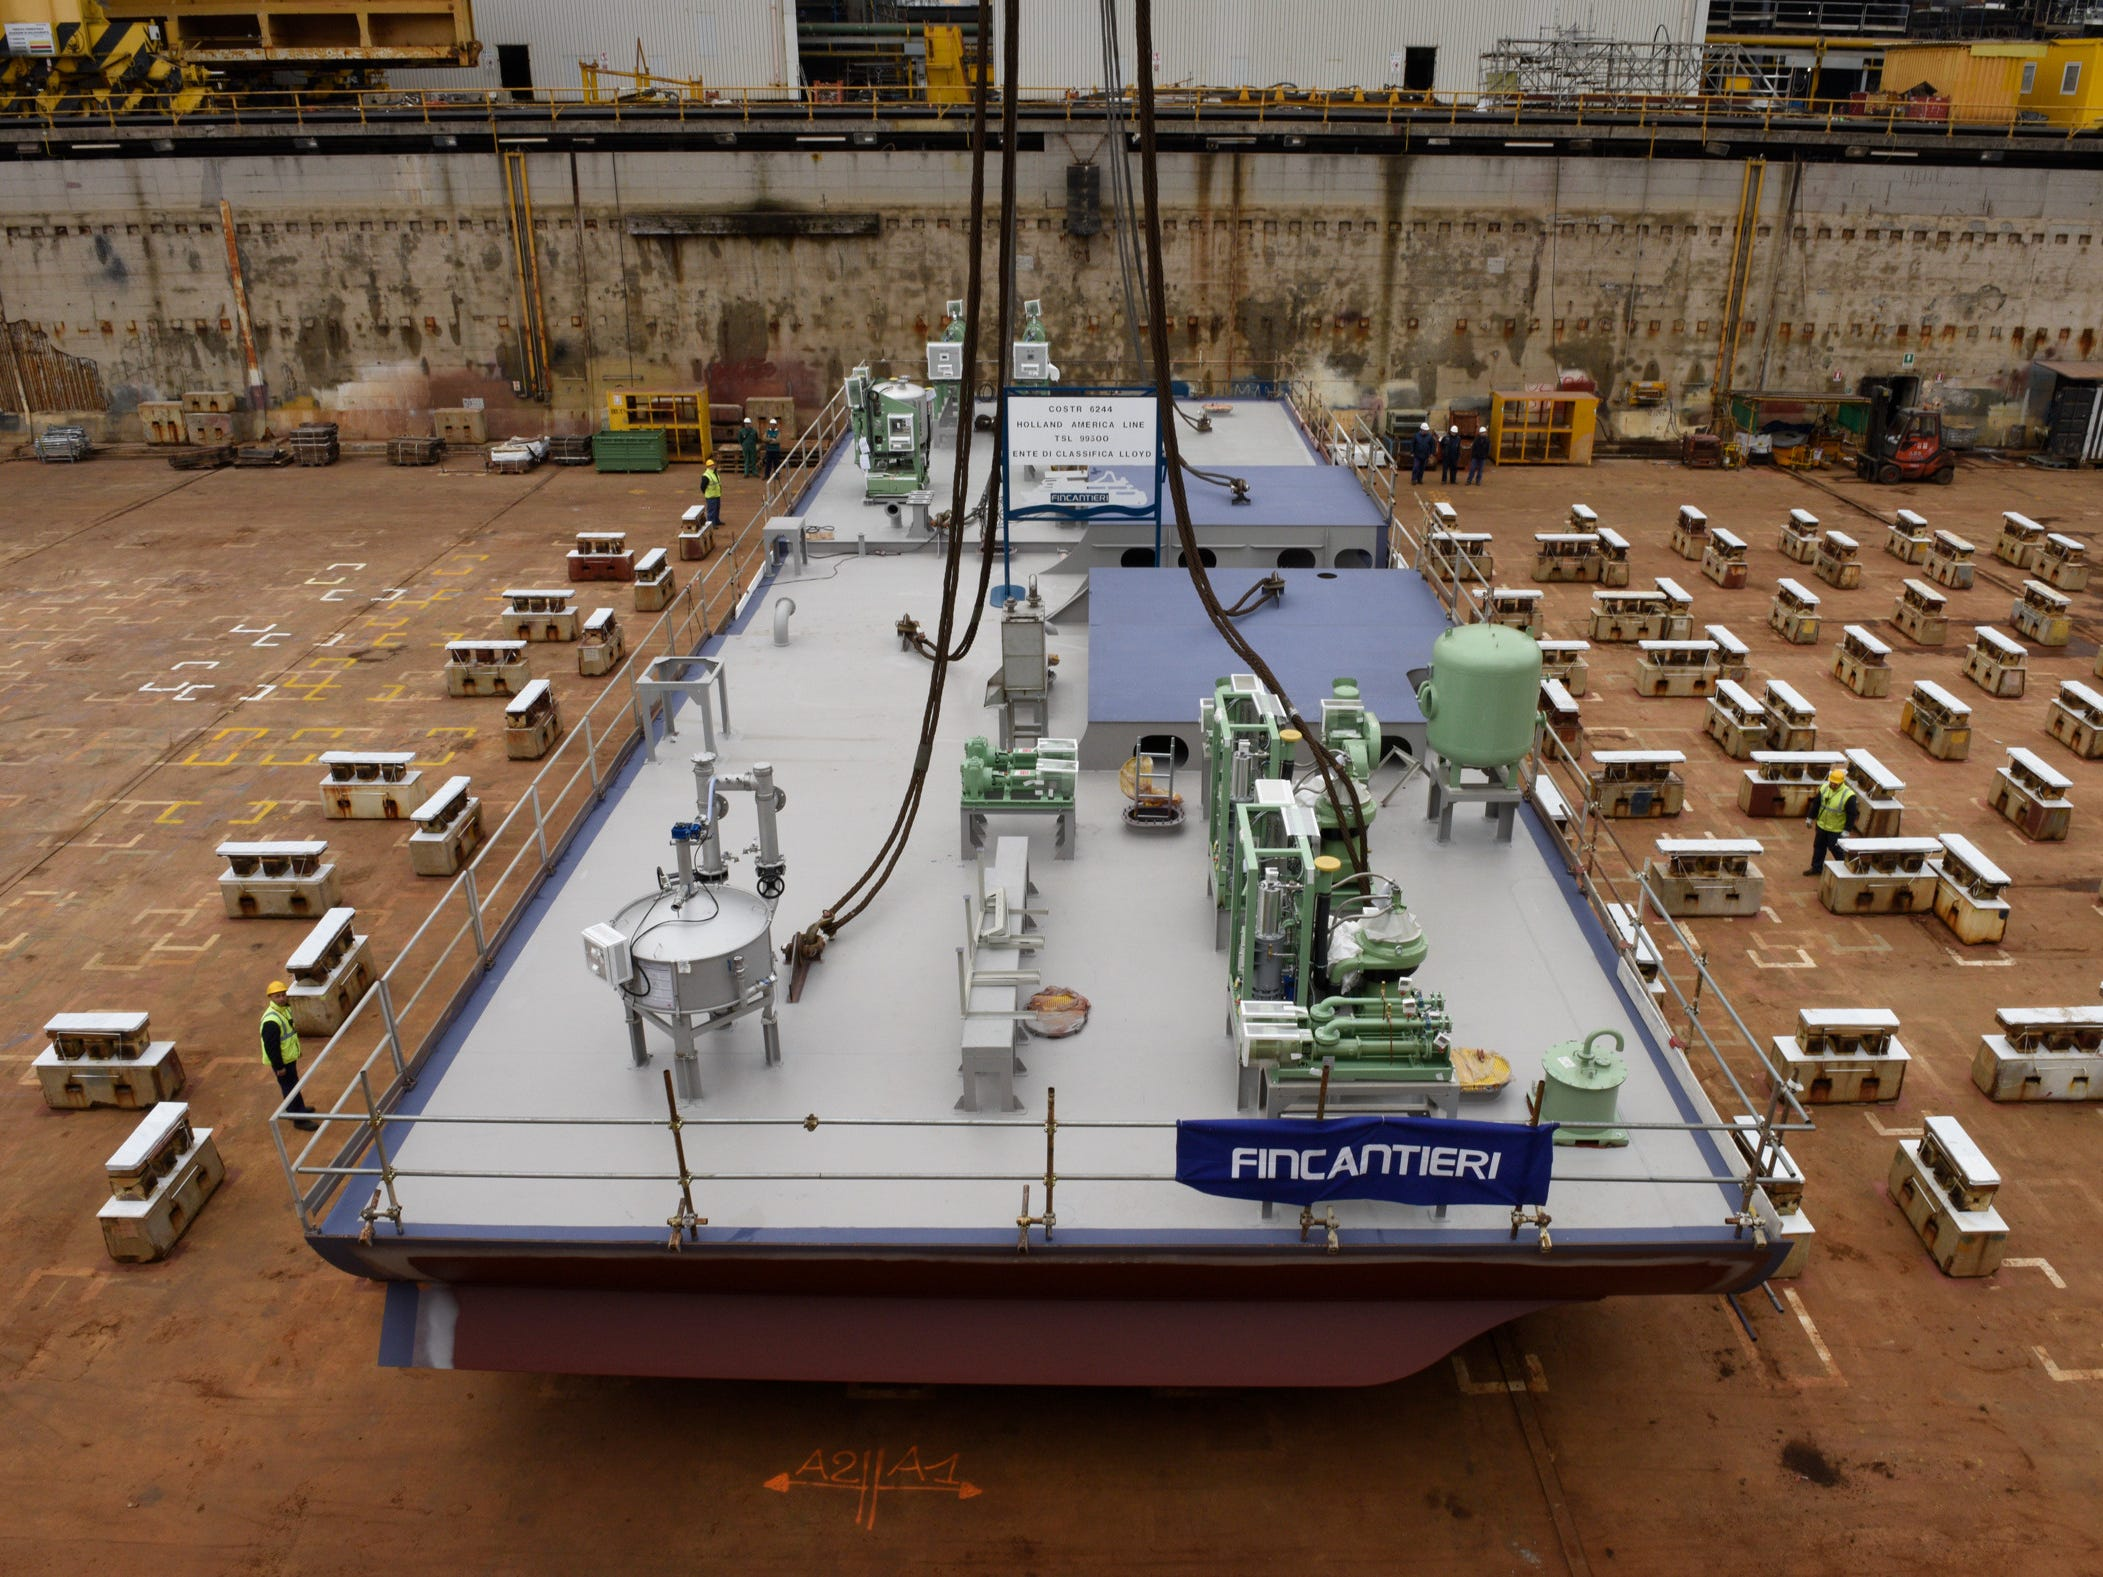 This is the first section of the 975-foot by 114.8-foot ship's hull when it was laid down at Fincantieri's Marghera (near Venice) shipyard on March 20, 2017.